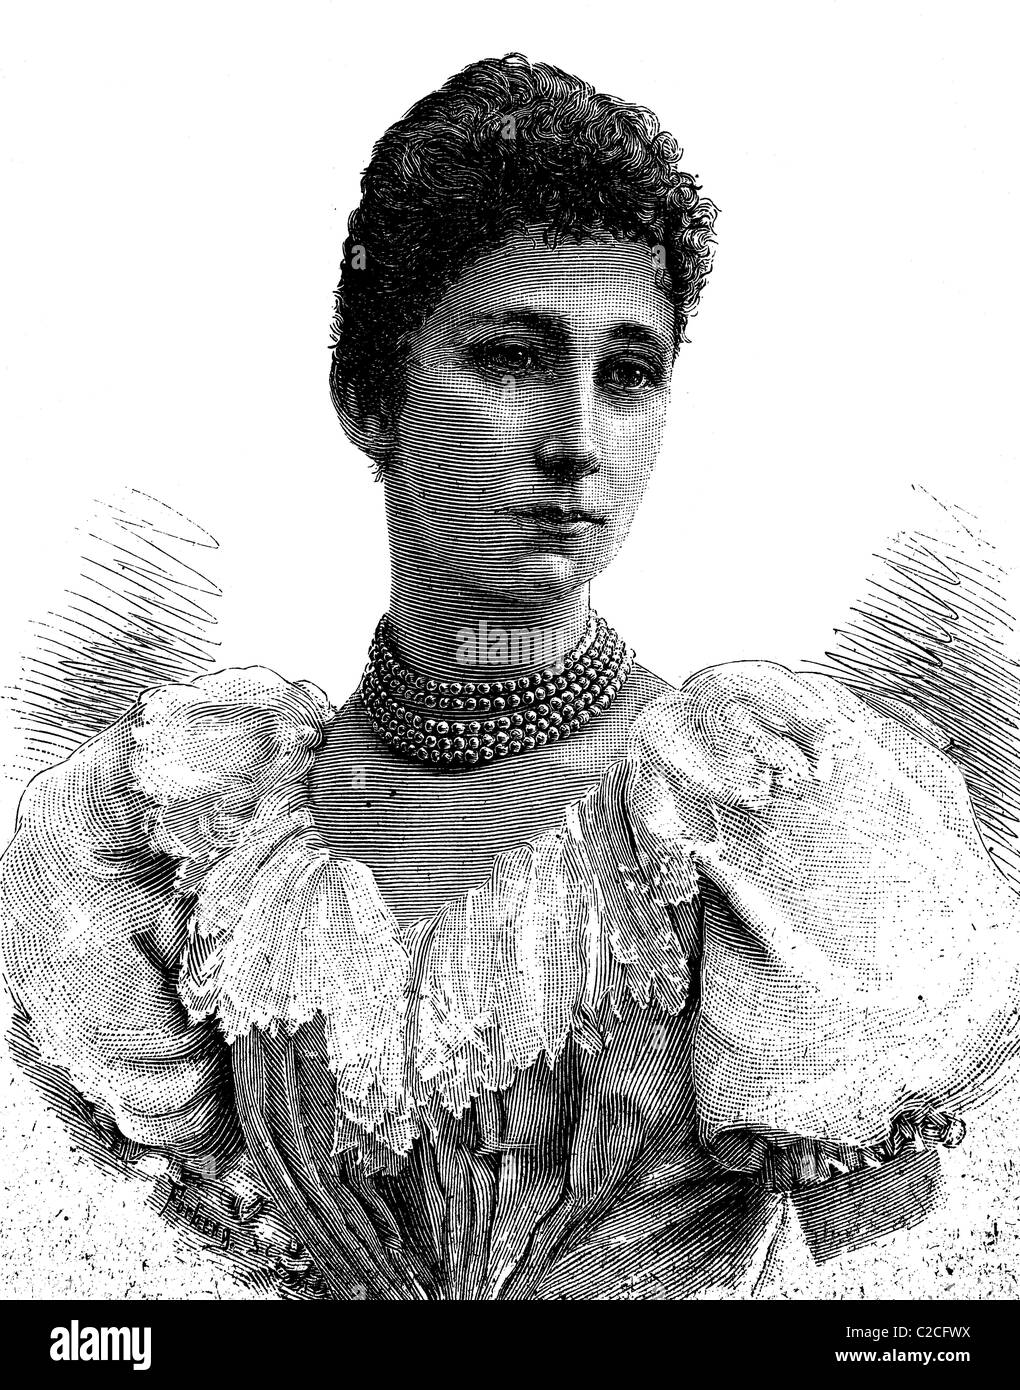 Louise Marie Thérèse d'Artois, 1819 - 1864, Regent of the Duchy of Parma, Piacenza and Guastella, - Stock Image